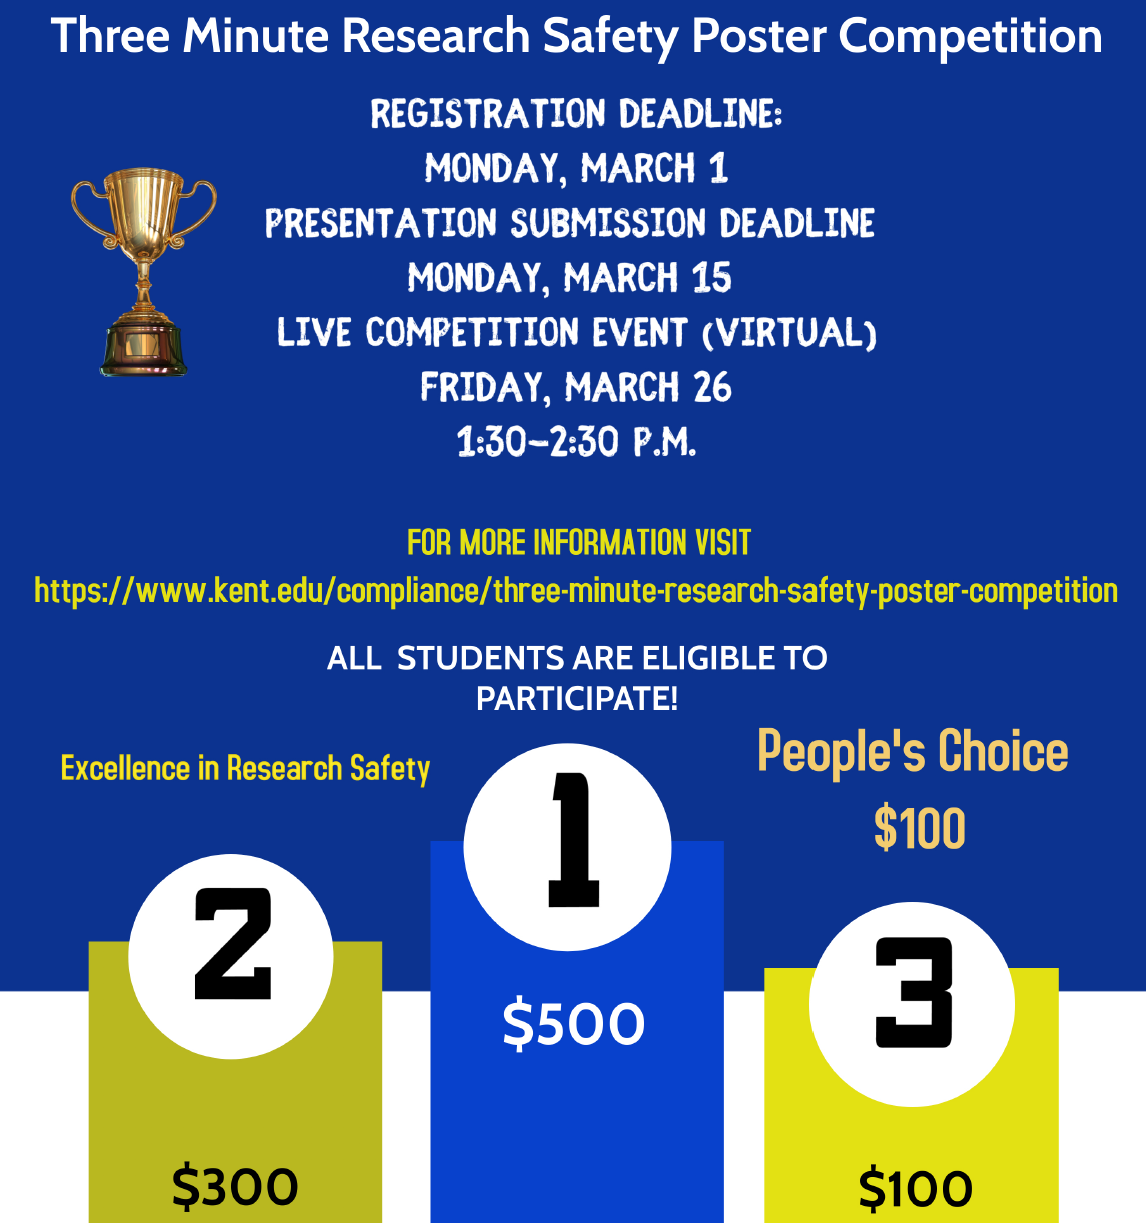 Three Minute Research Safety Poster Competition